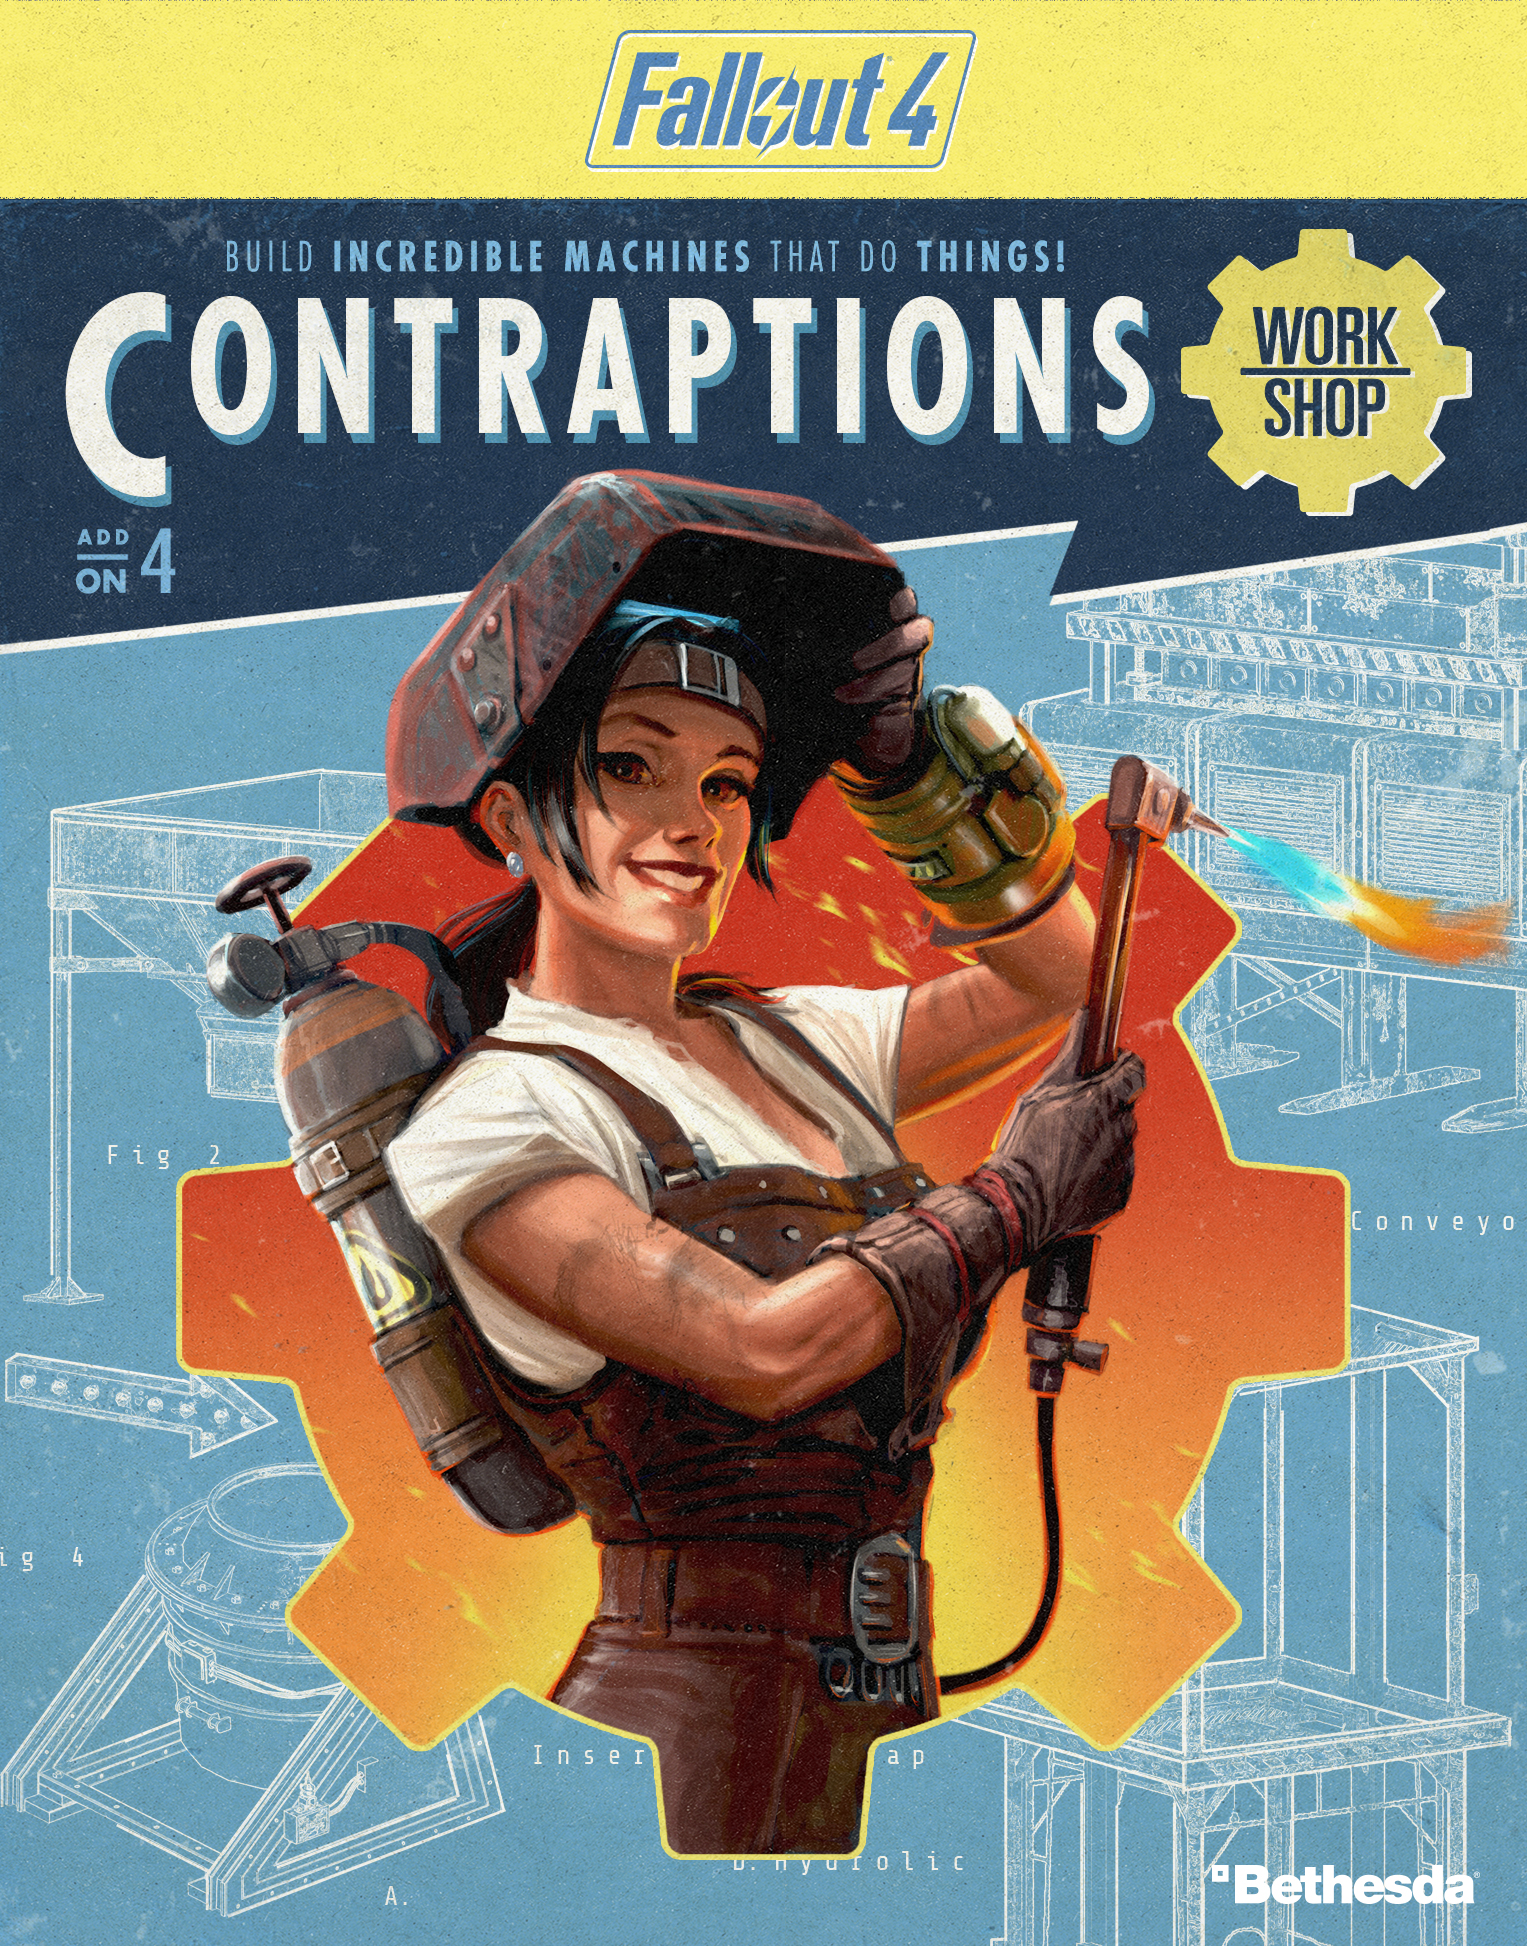 Fallout 4 Contraptions Workshop DLC launches today